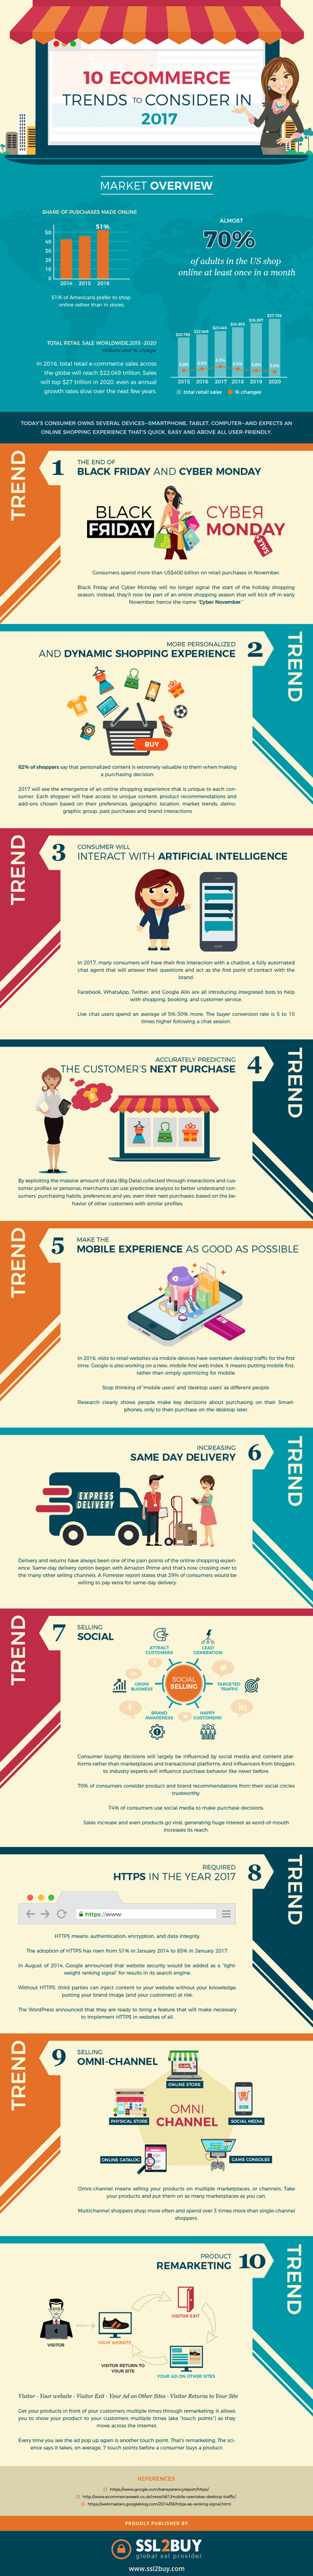 Infographic – 10 eCommerce Trends To Consider In 2017